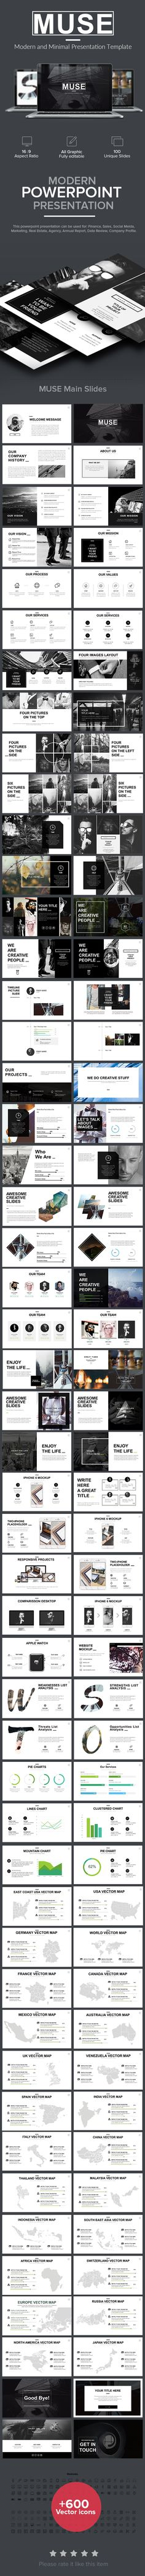 Muse Minimal Presentation Template #minimal #mockup #modern • Available here → http://graphicriver.net/item/muse-minimal-presentation-template/15804016?ref=pxcr